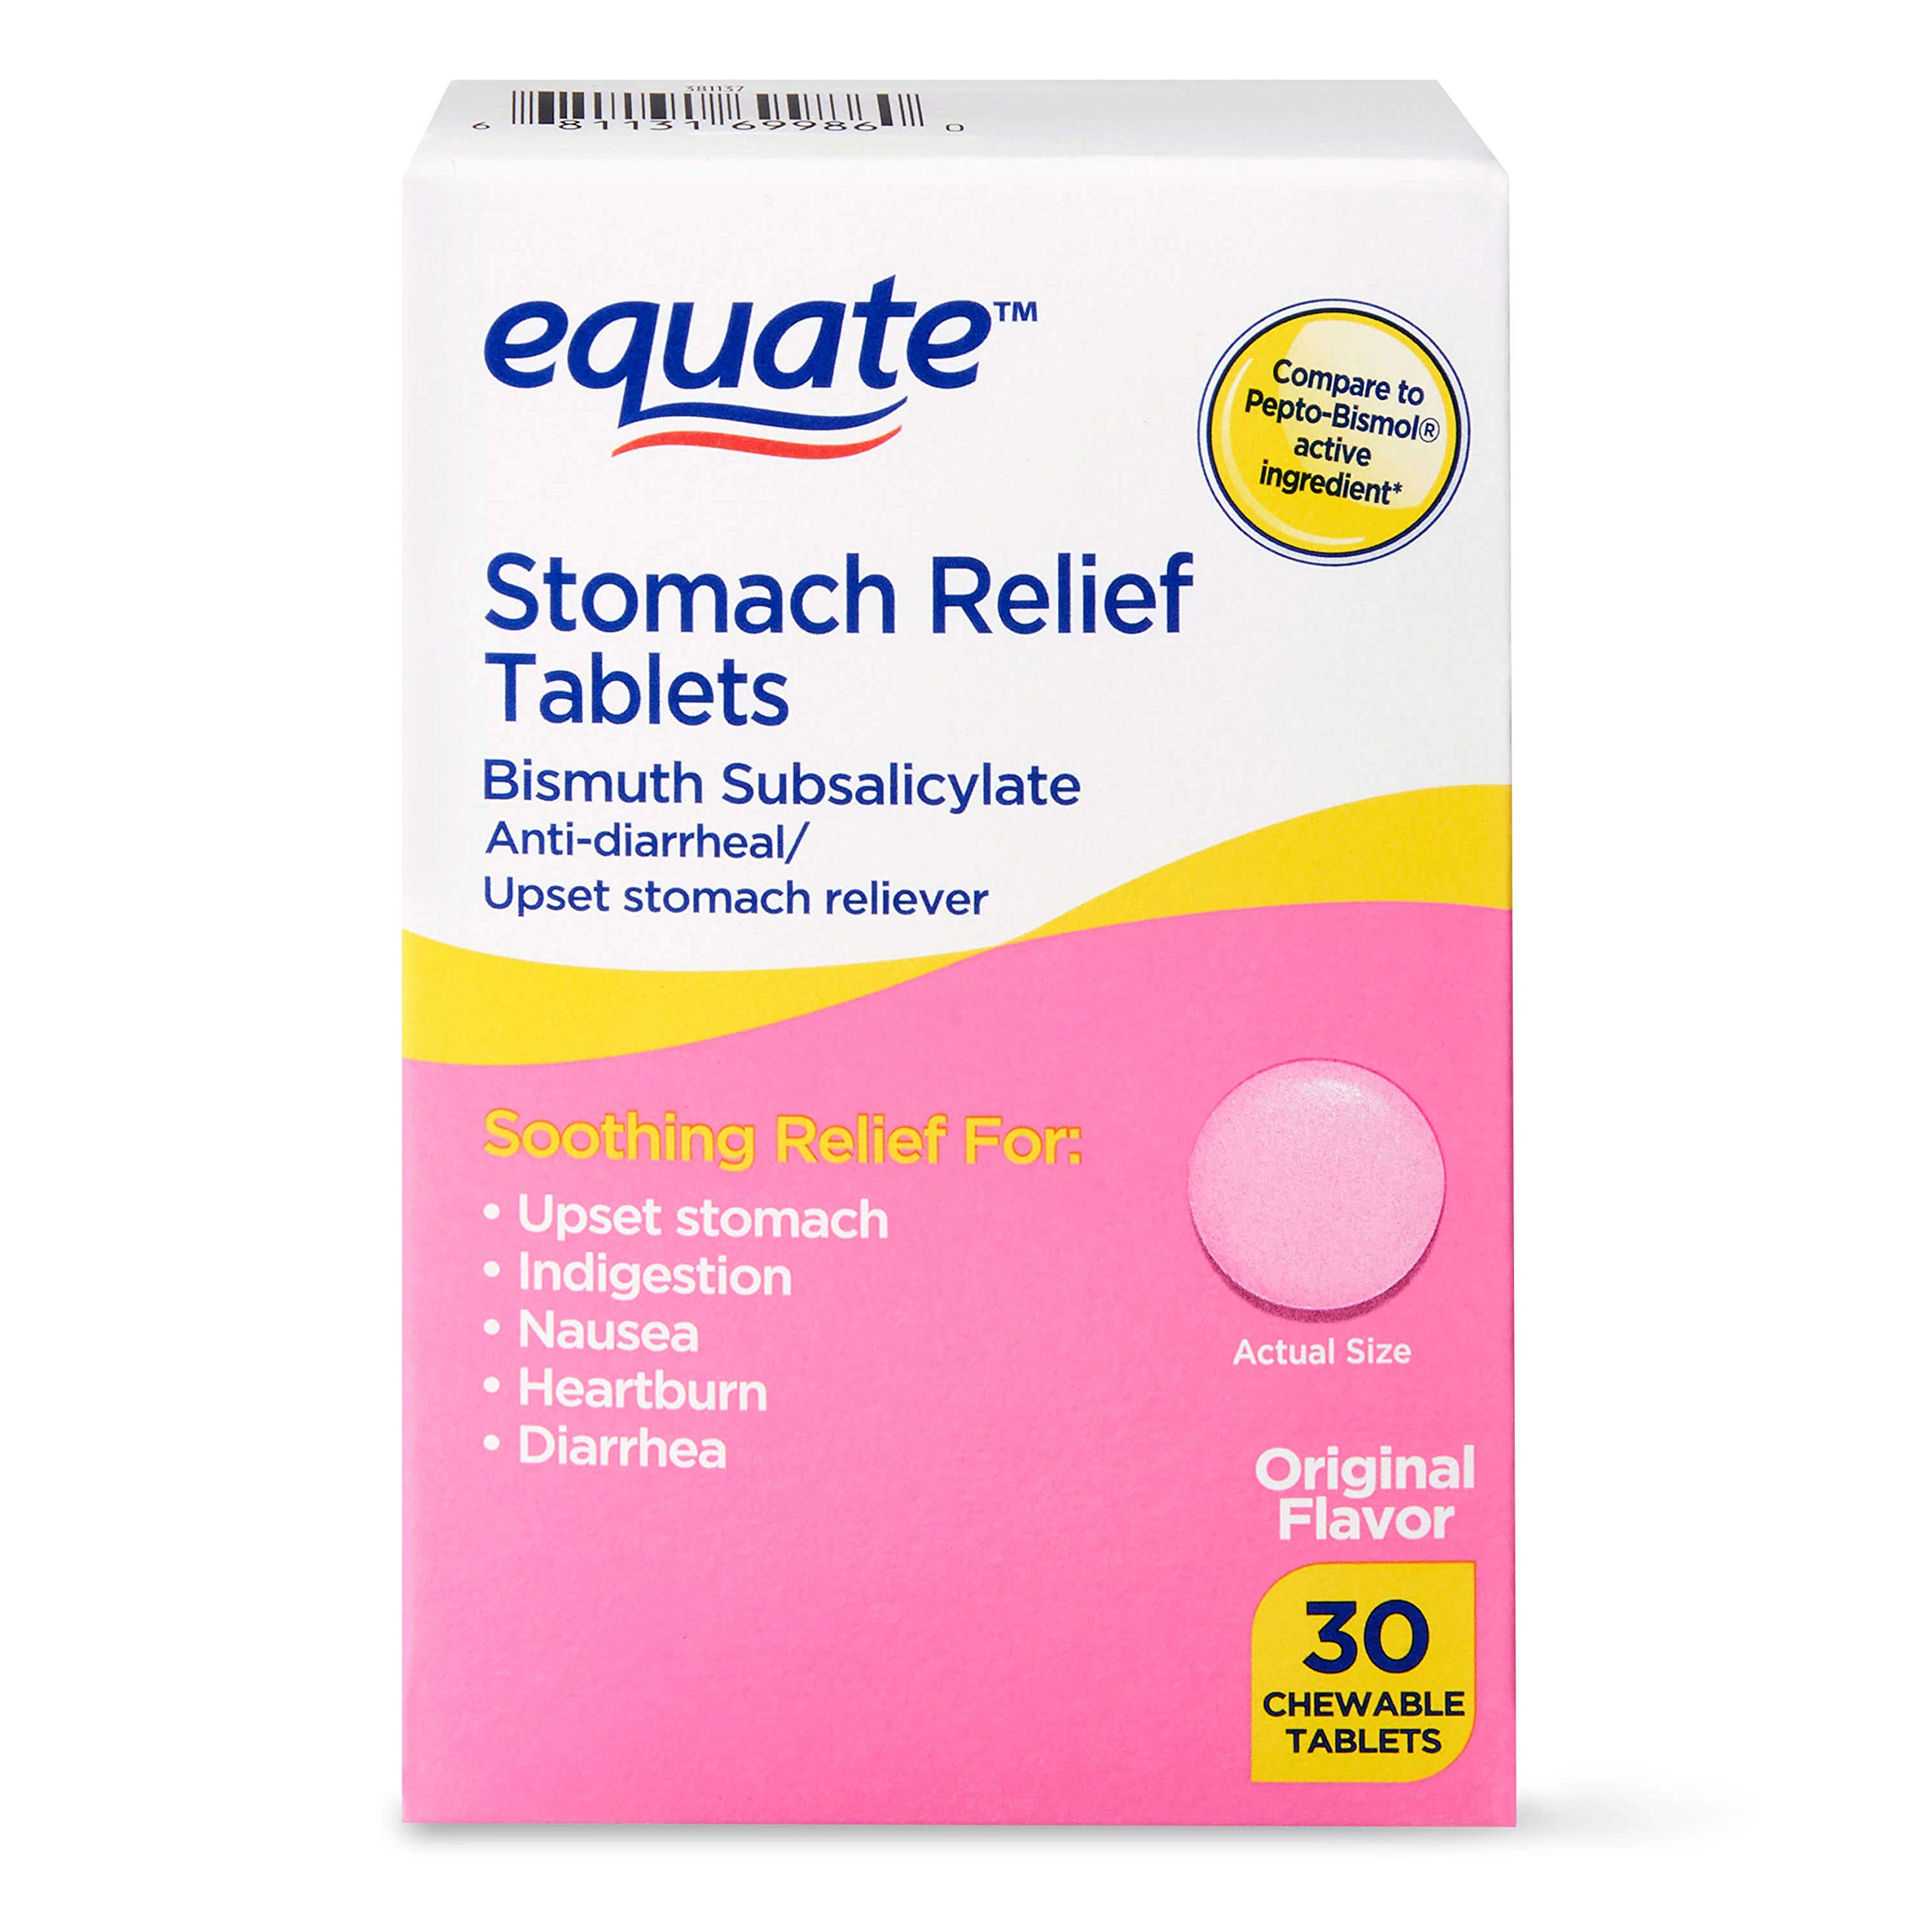 Equate - Stomach Relief, Pink Bismuth Subsalicylate, 30 Chewable Tablets